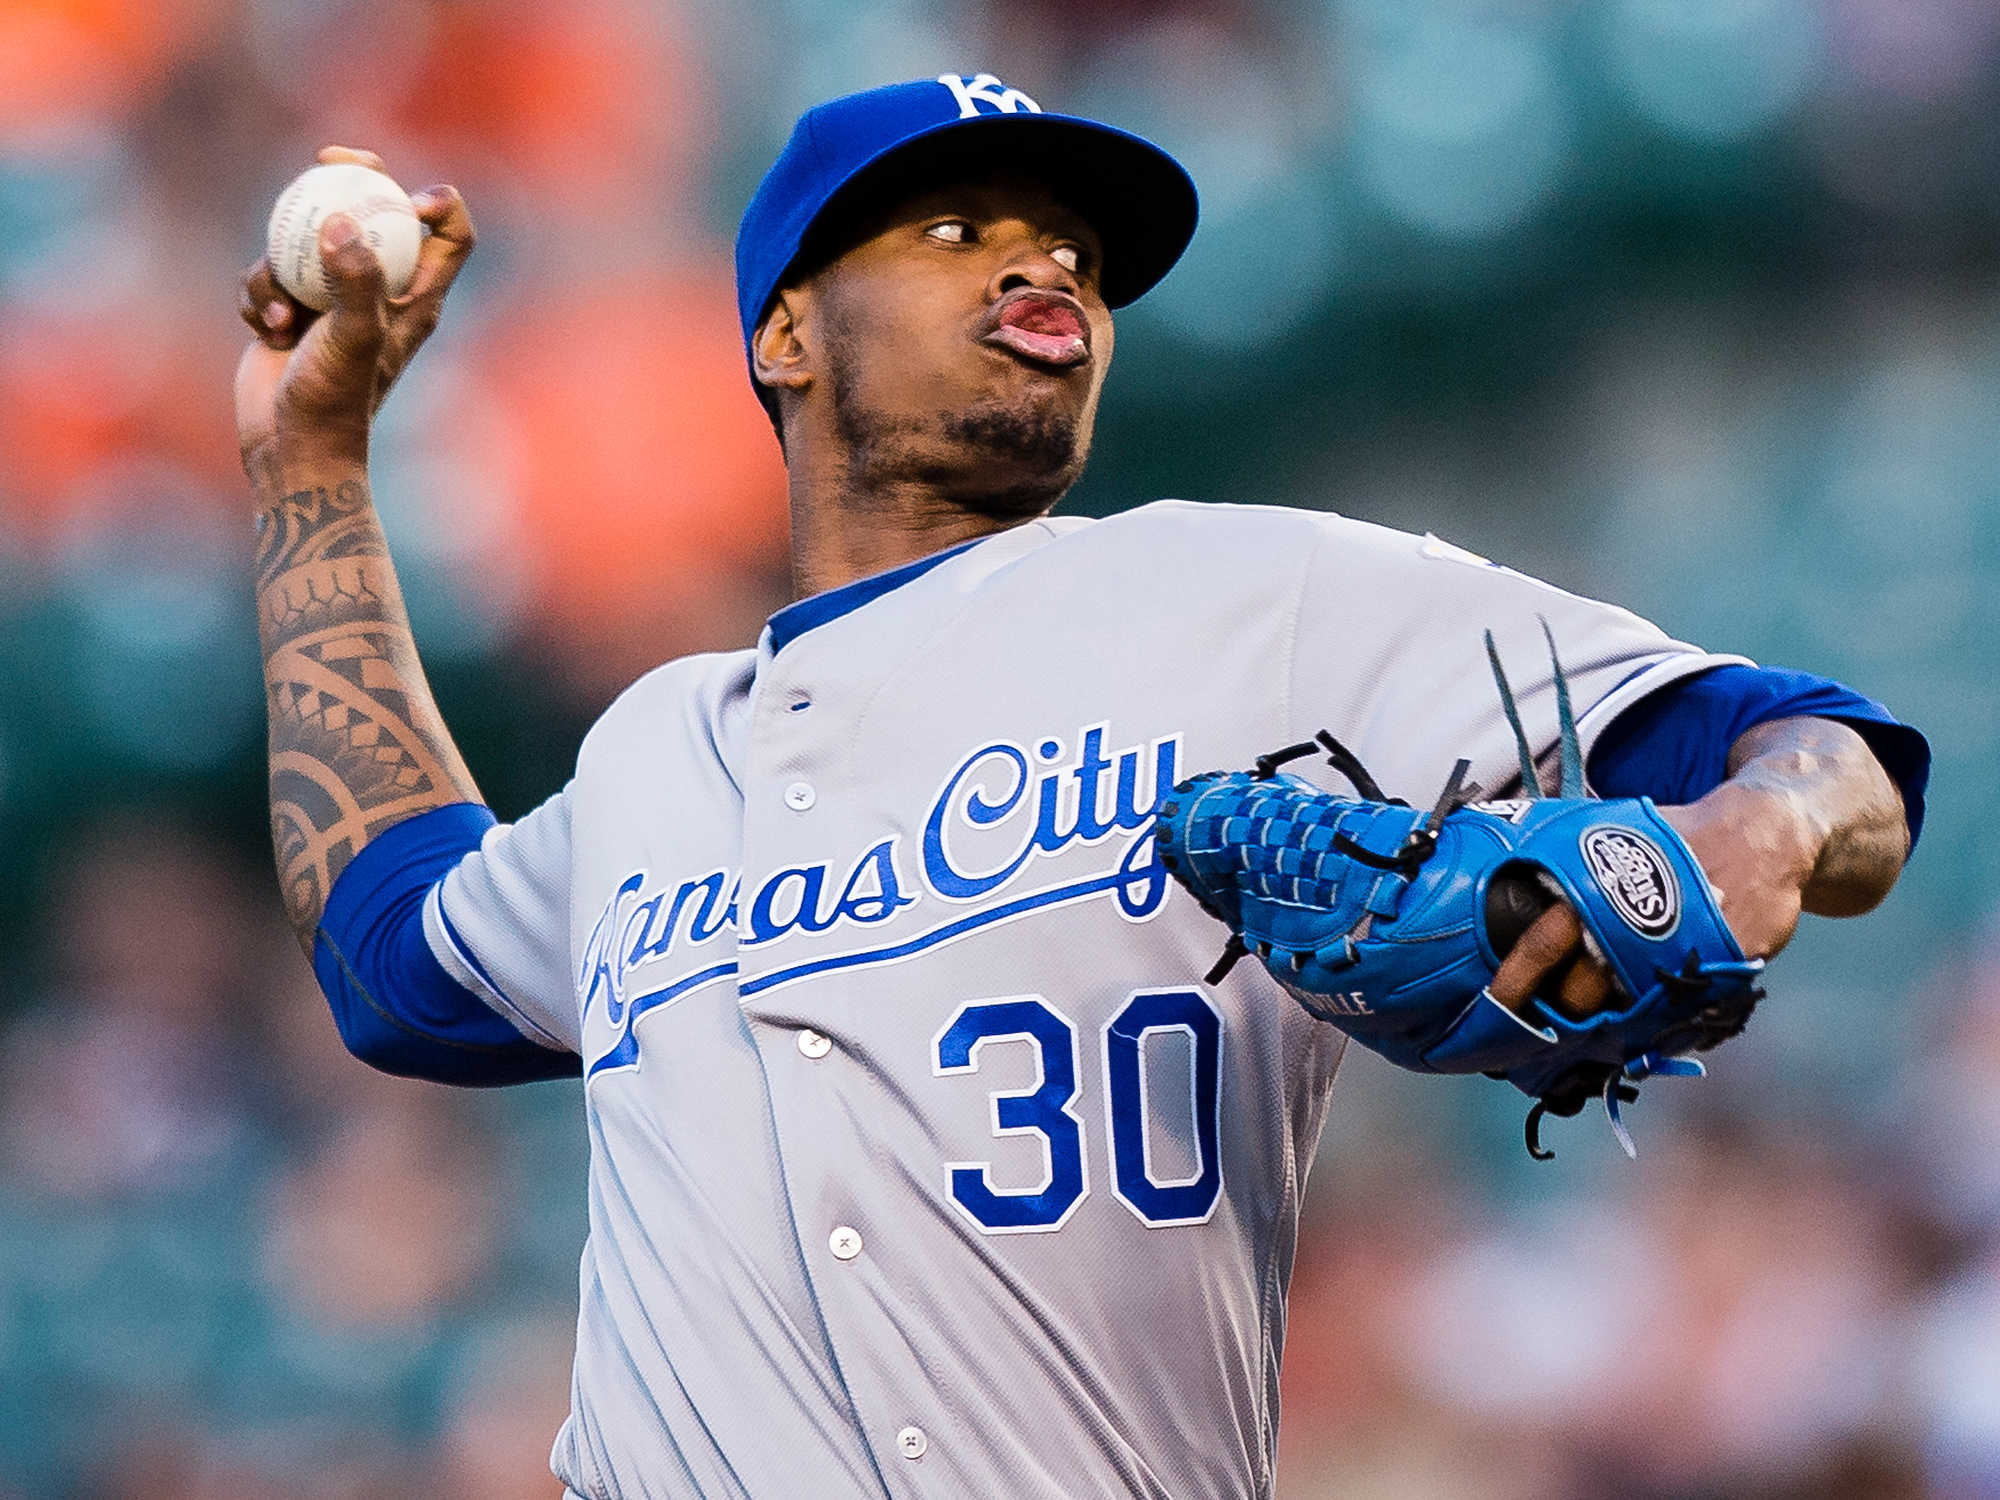 Kansas City Royals Yordano Ventura